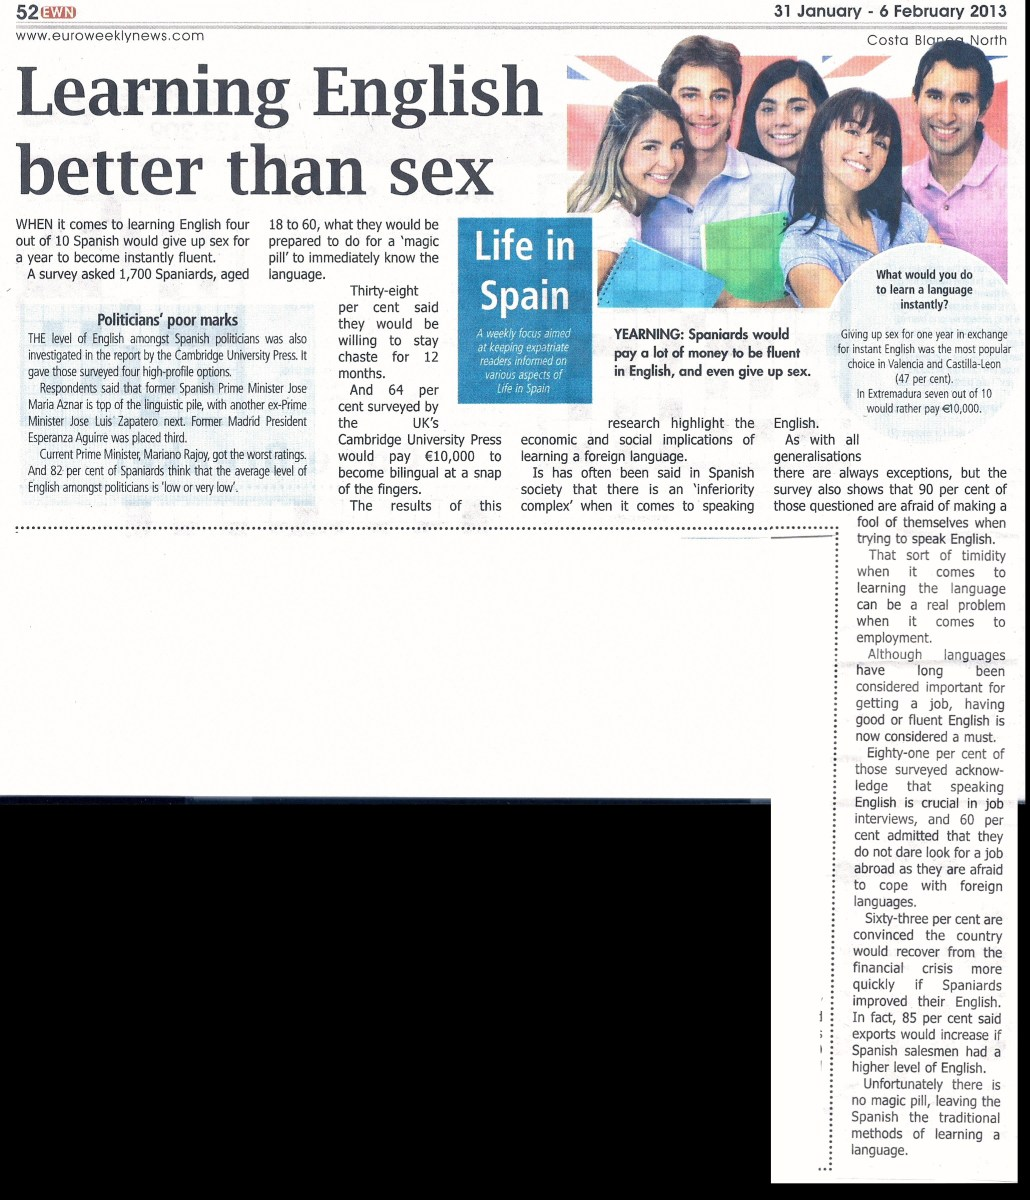 Is learning English better than s*x? (See newspaper cutting.)